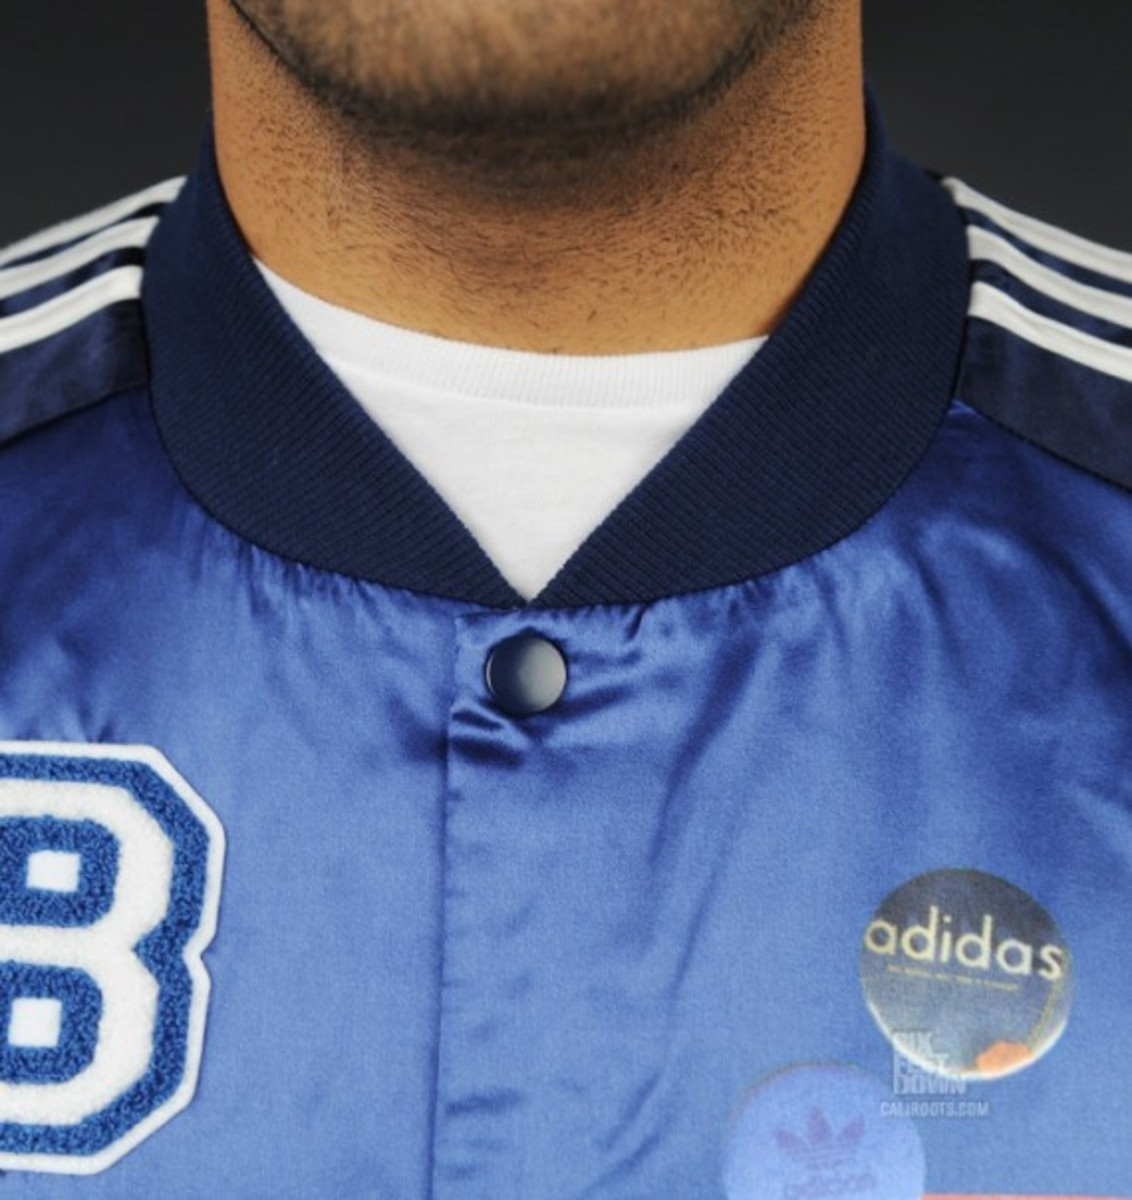 adidas-originals-club-jacket-08